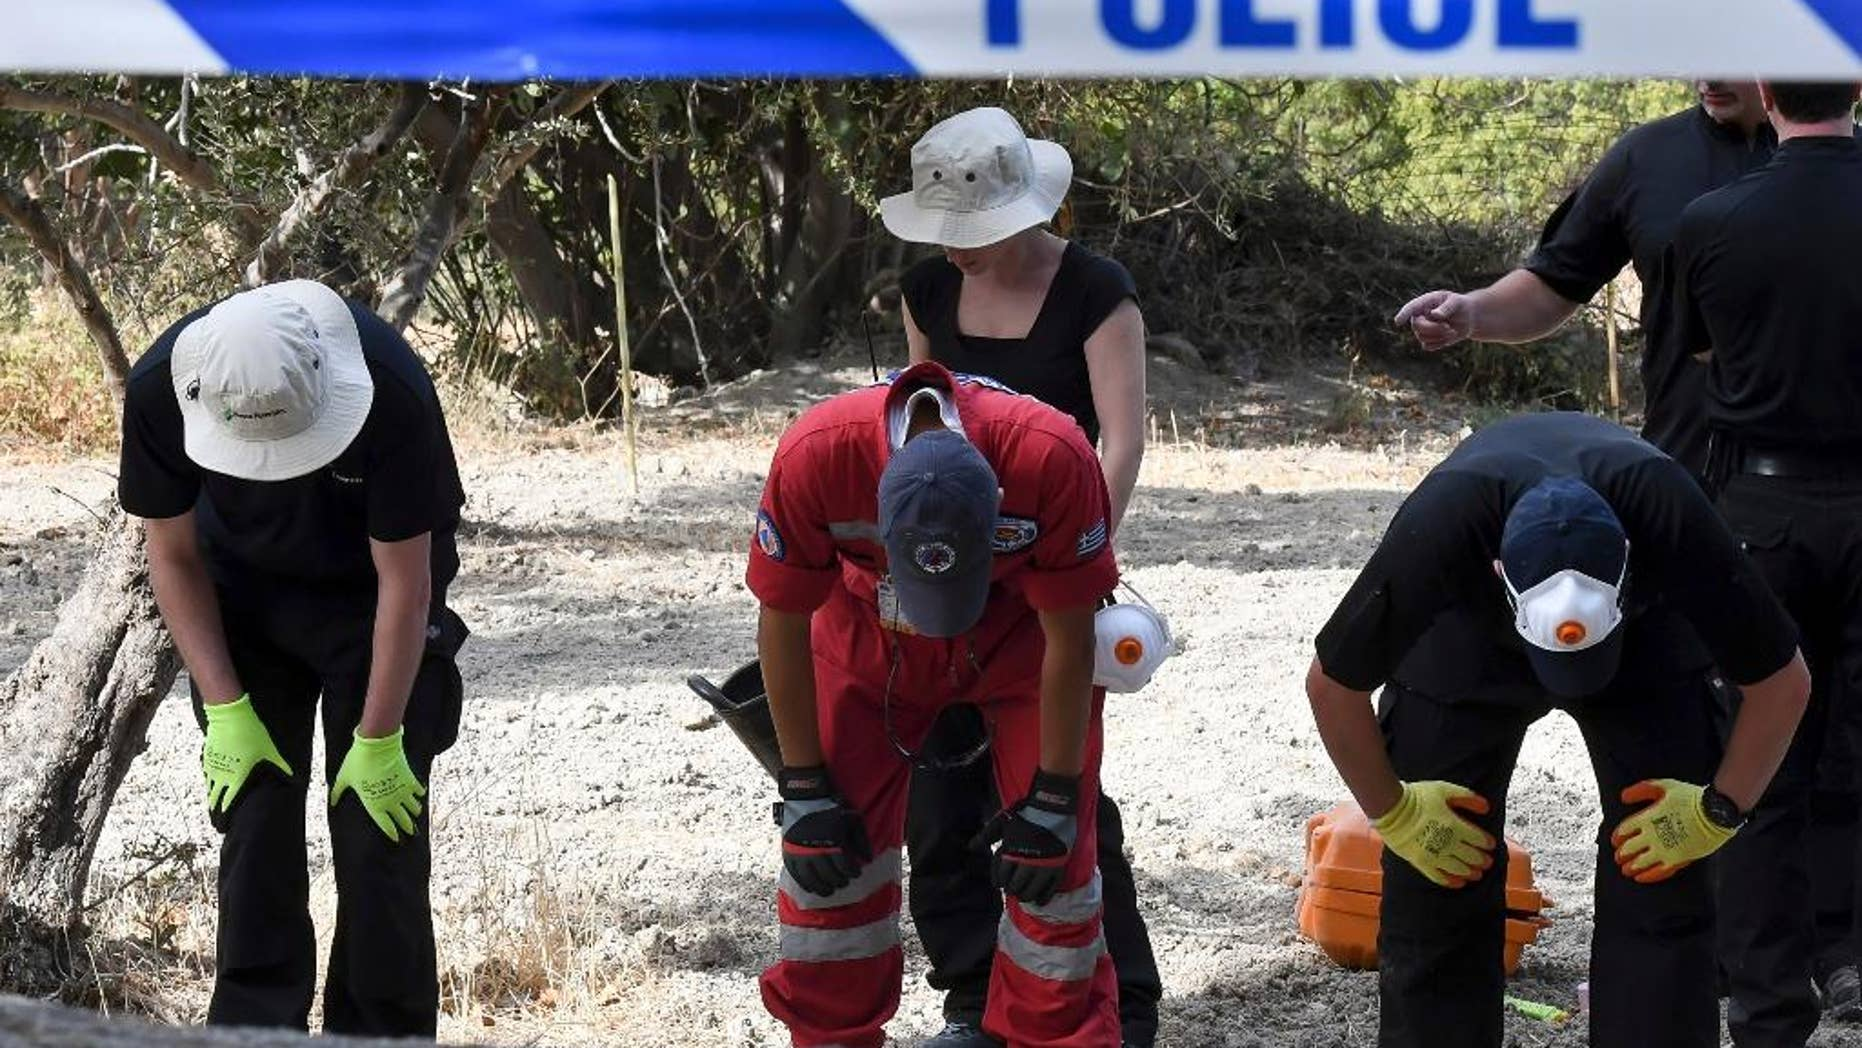 FILE - In this Monday, Sept. 26, 2016 file photo, British officers and members of the Greek rescue team search an area of land on the southeastern Greek island of Kos. A British toddler who went missing on a Greek island 25 years ago is believed to have been killed in a construction-site accident that was covered up for almost a quarter of a century, police said Monday, Oct. 17, 2016. (Nikos Panagiotopoulos/InTime News via AP, file)